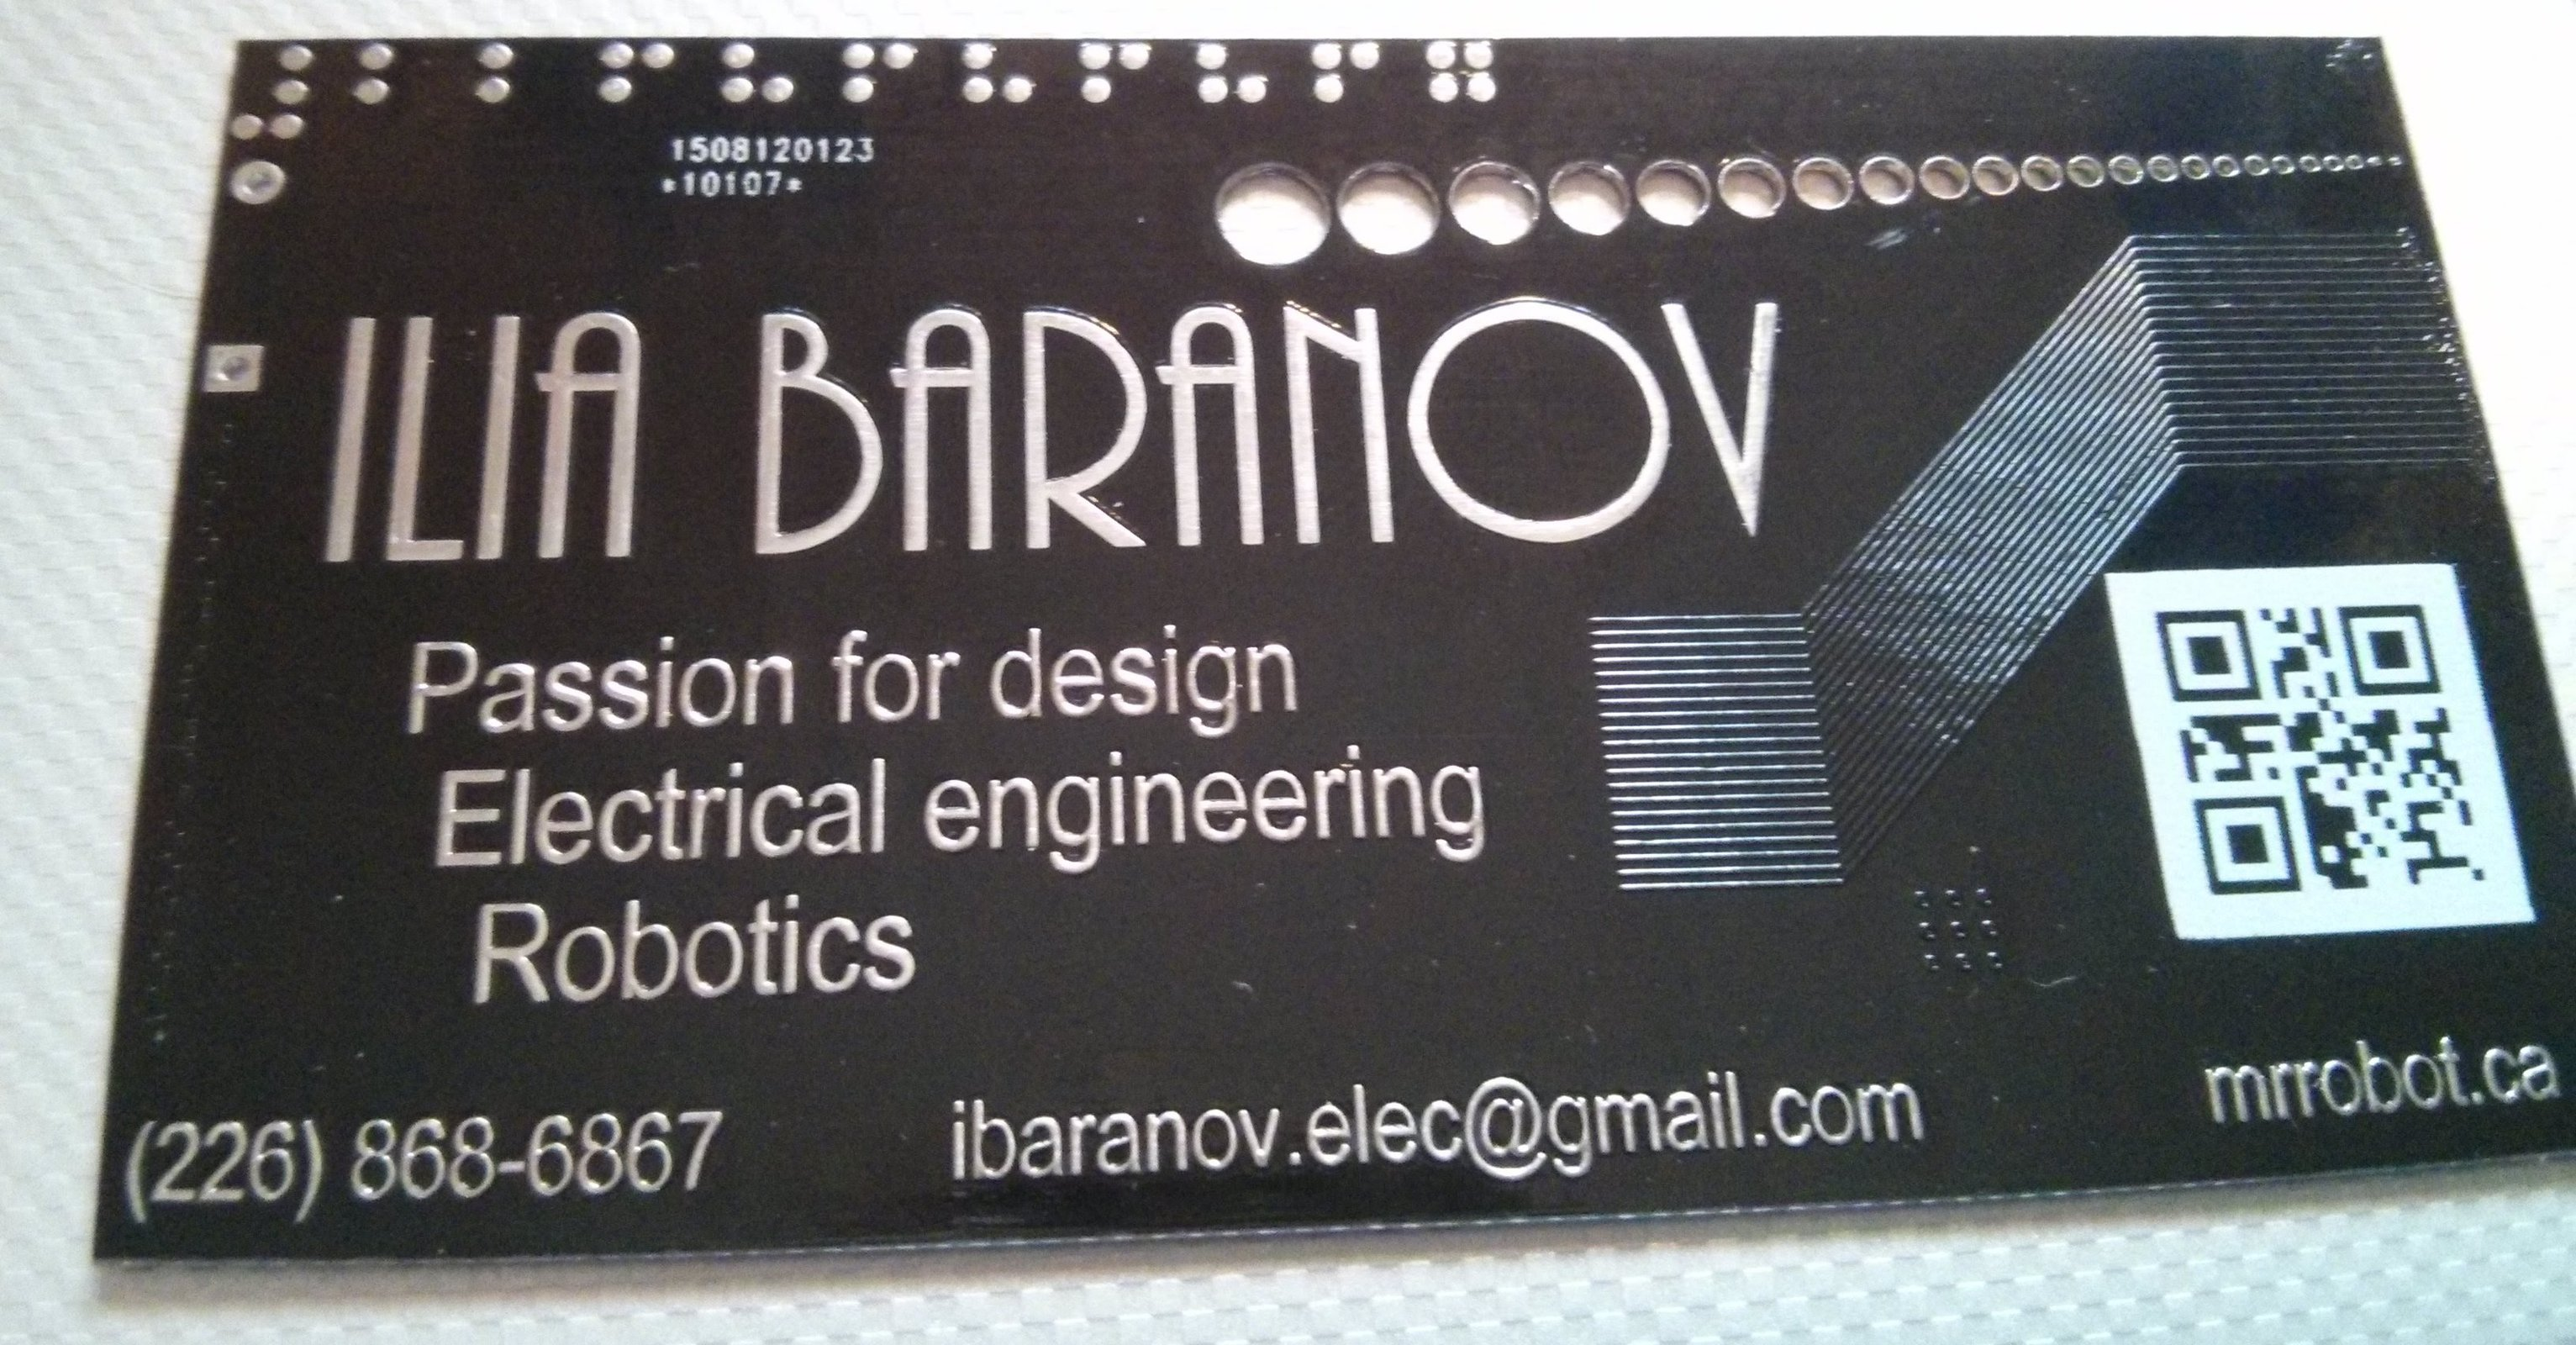 10x custom pcb business card from mr robot on tindie 10x custom pcb business card 4 colourmoves